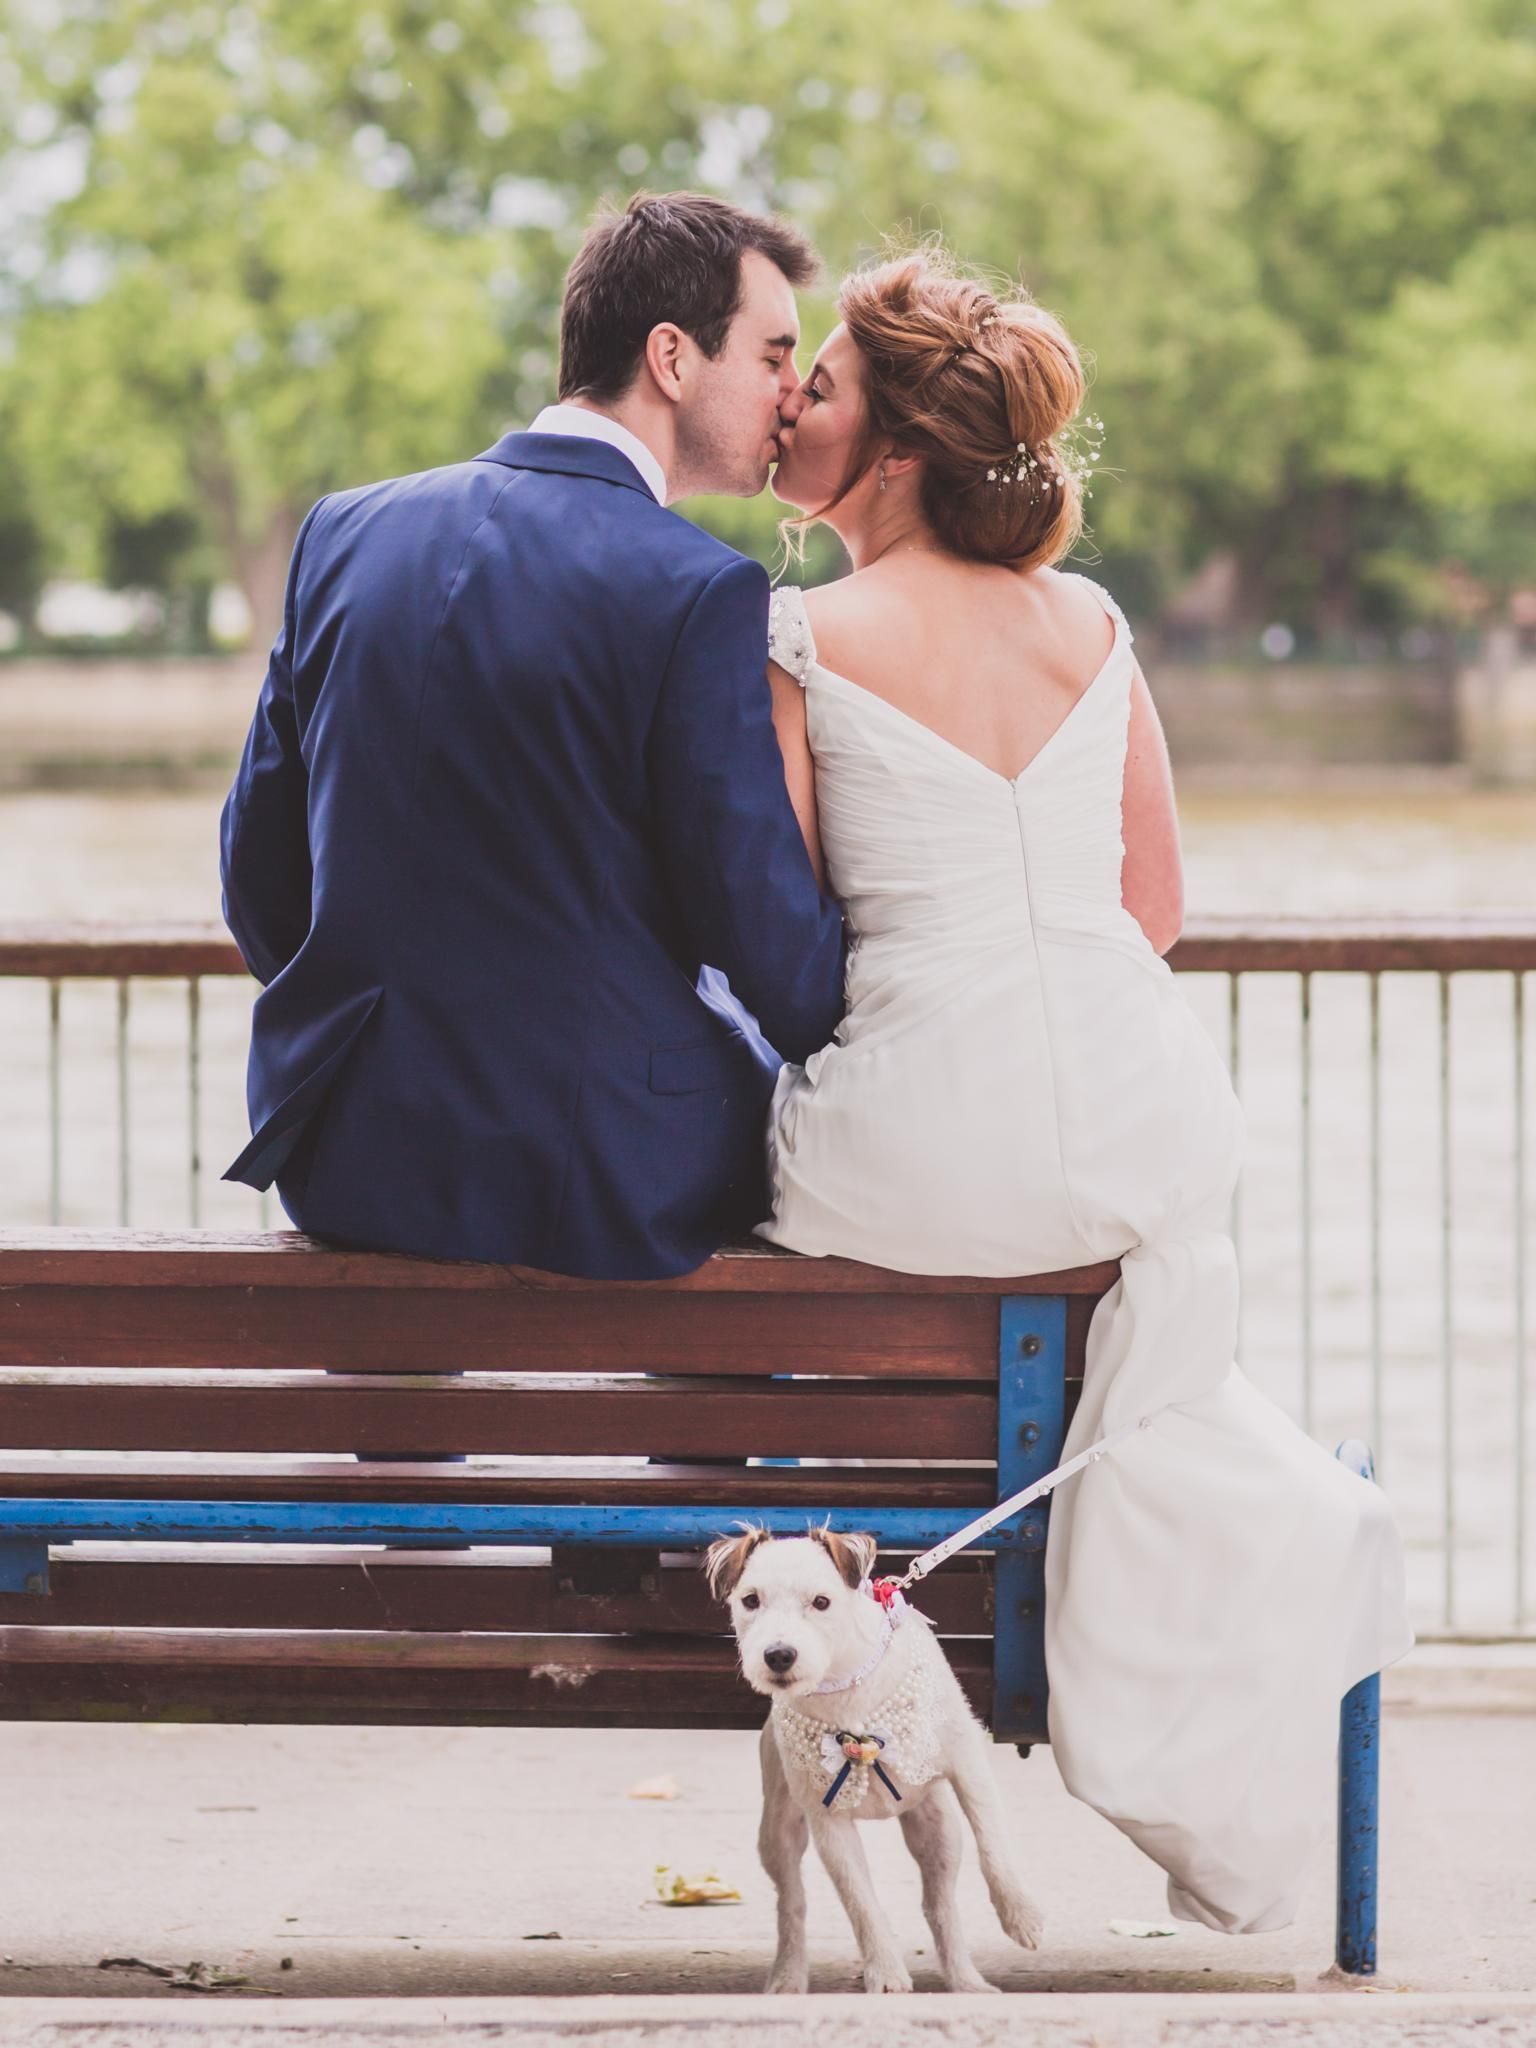 Valo Studio Wedding Photography Videography In London By Hong Kong Chinese Photographer